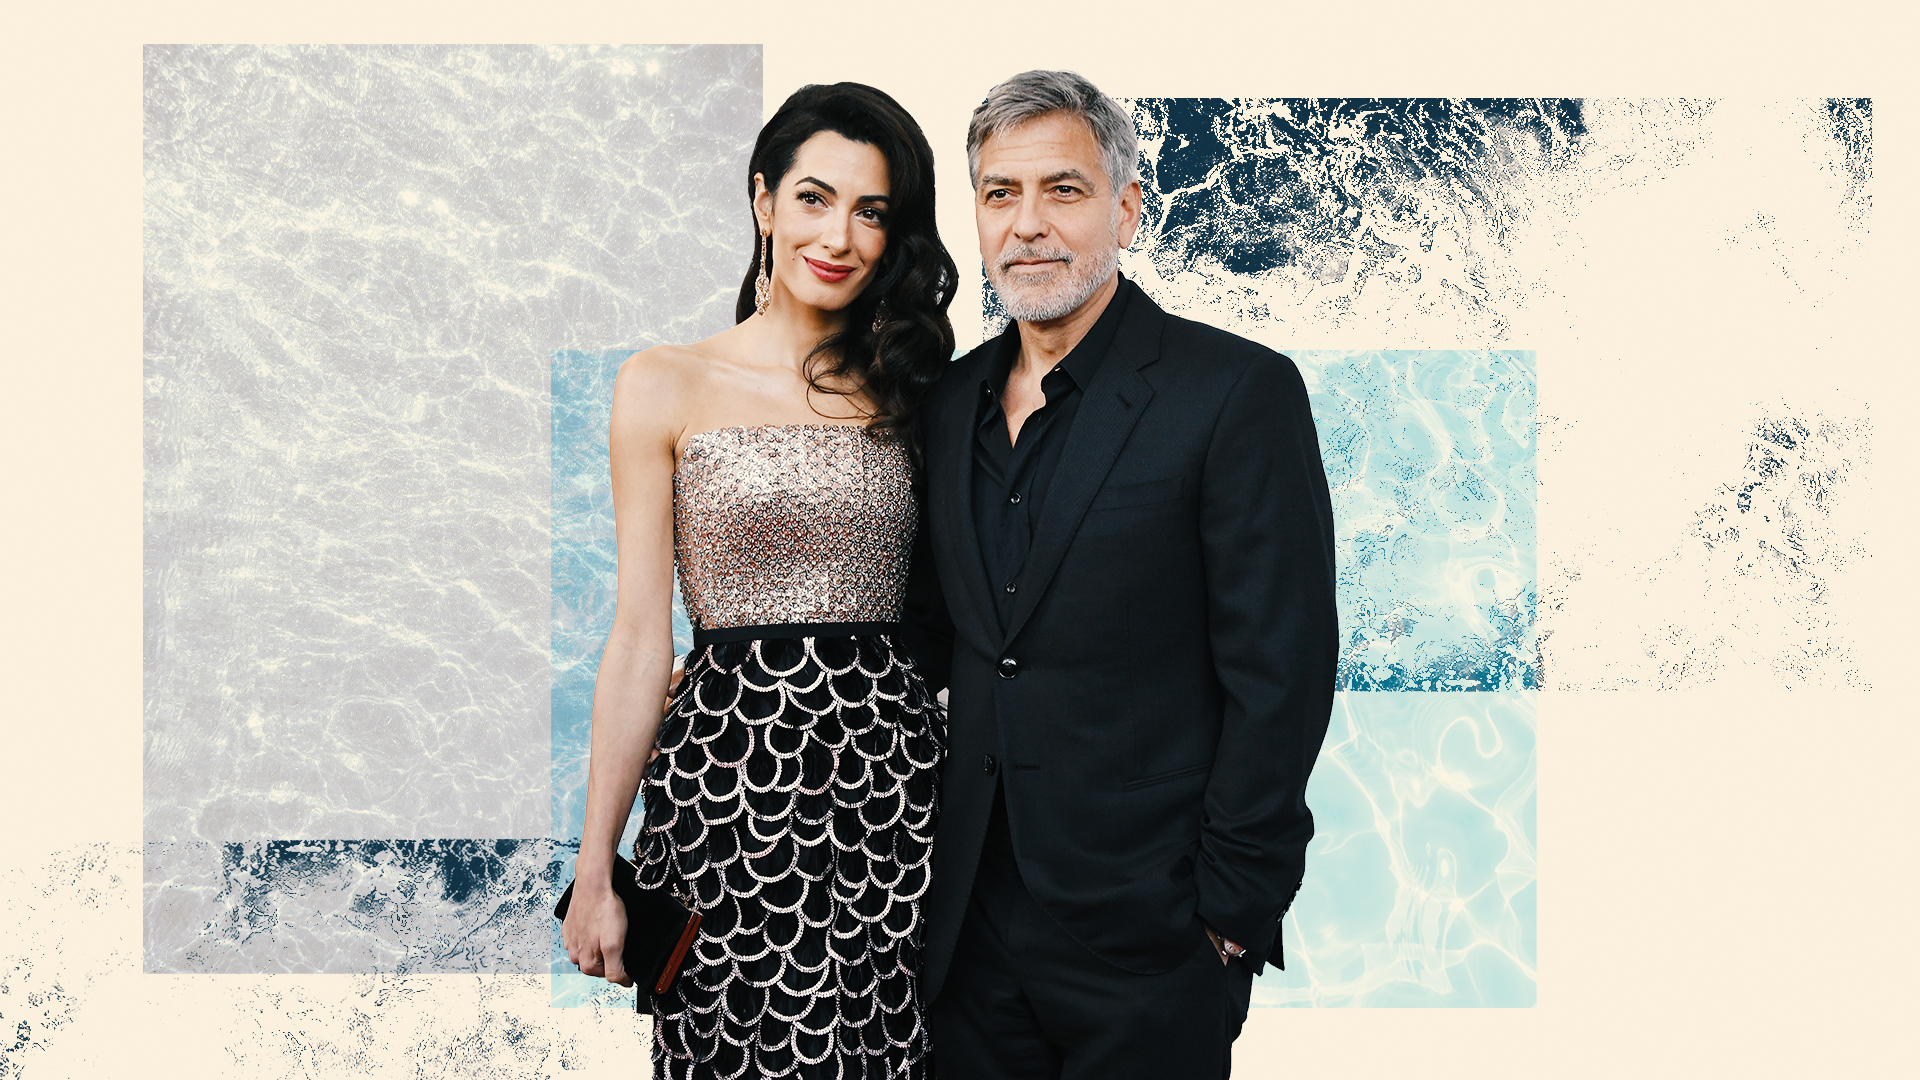 George Clooney, Amal Clooney Divorce Rumors and Real Truth